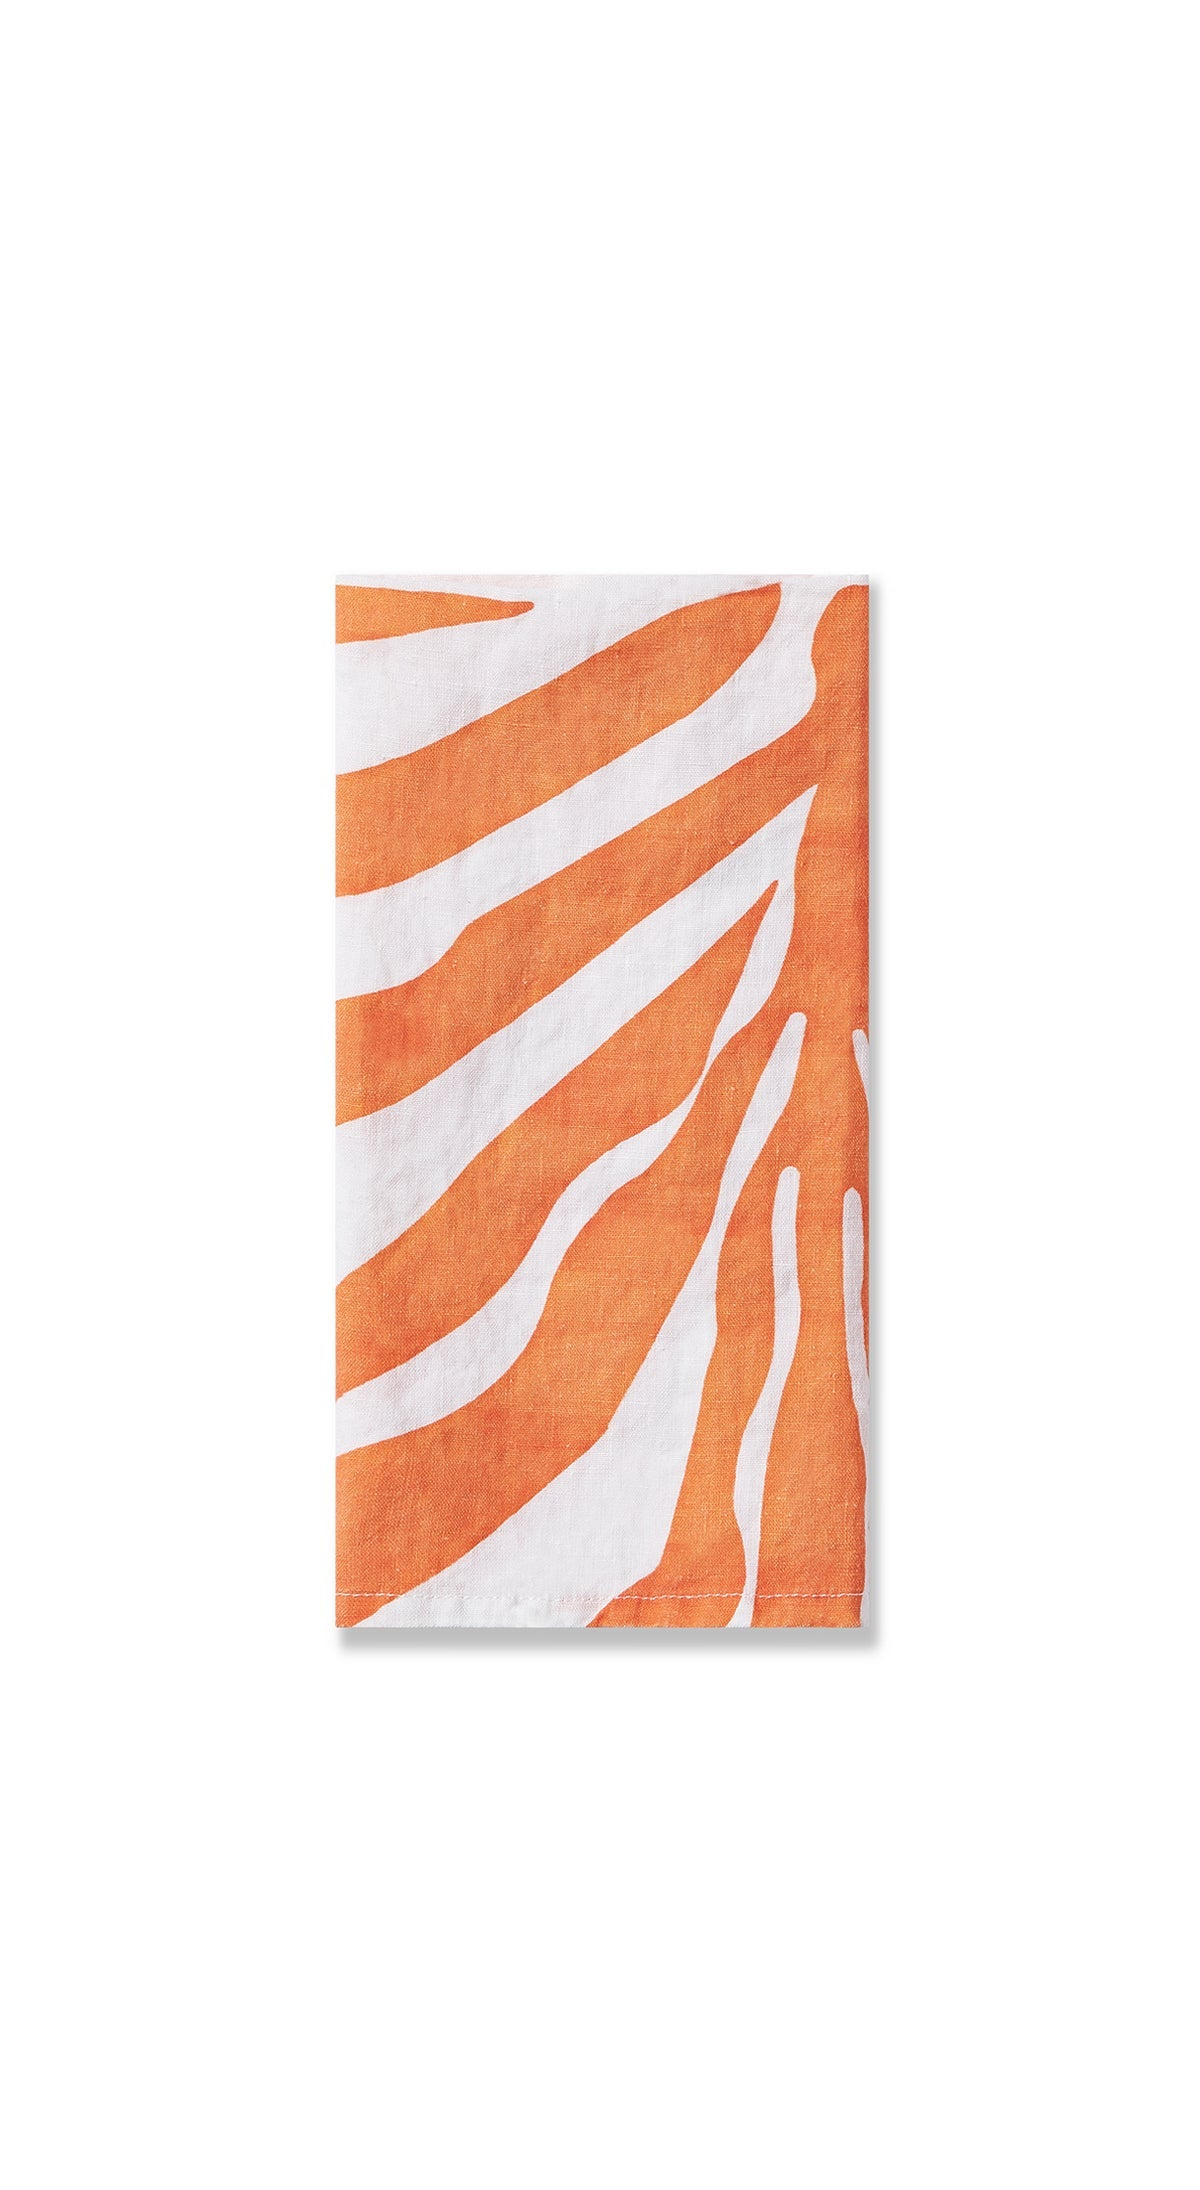 Zebra Linen Napkin in Tangerine Orange